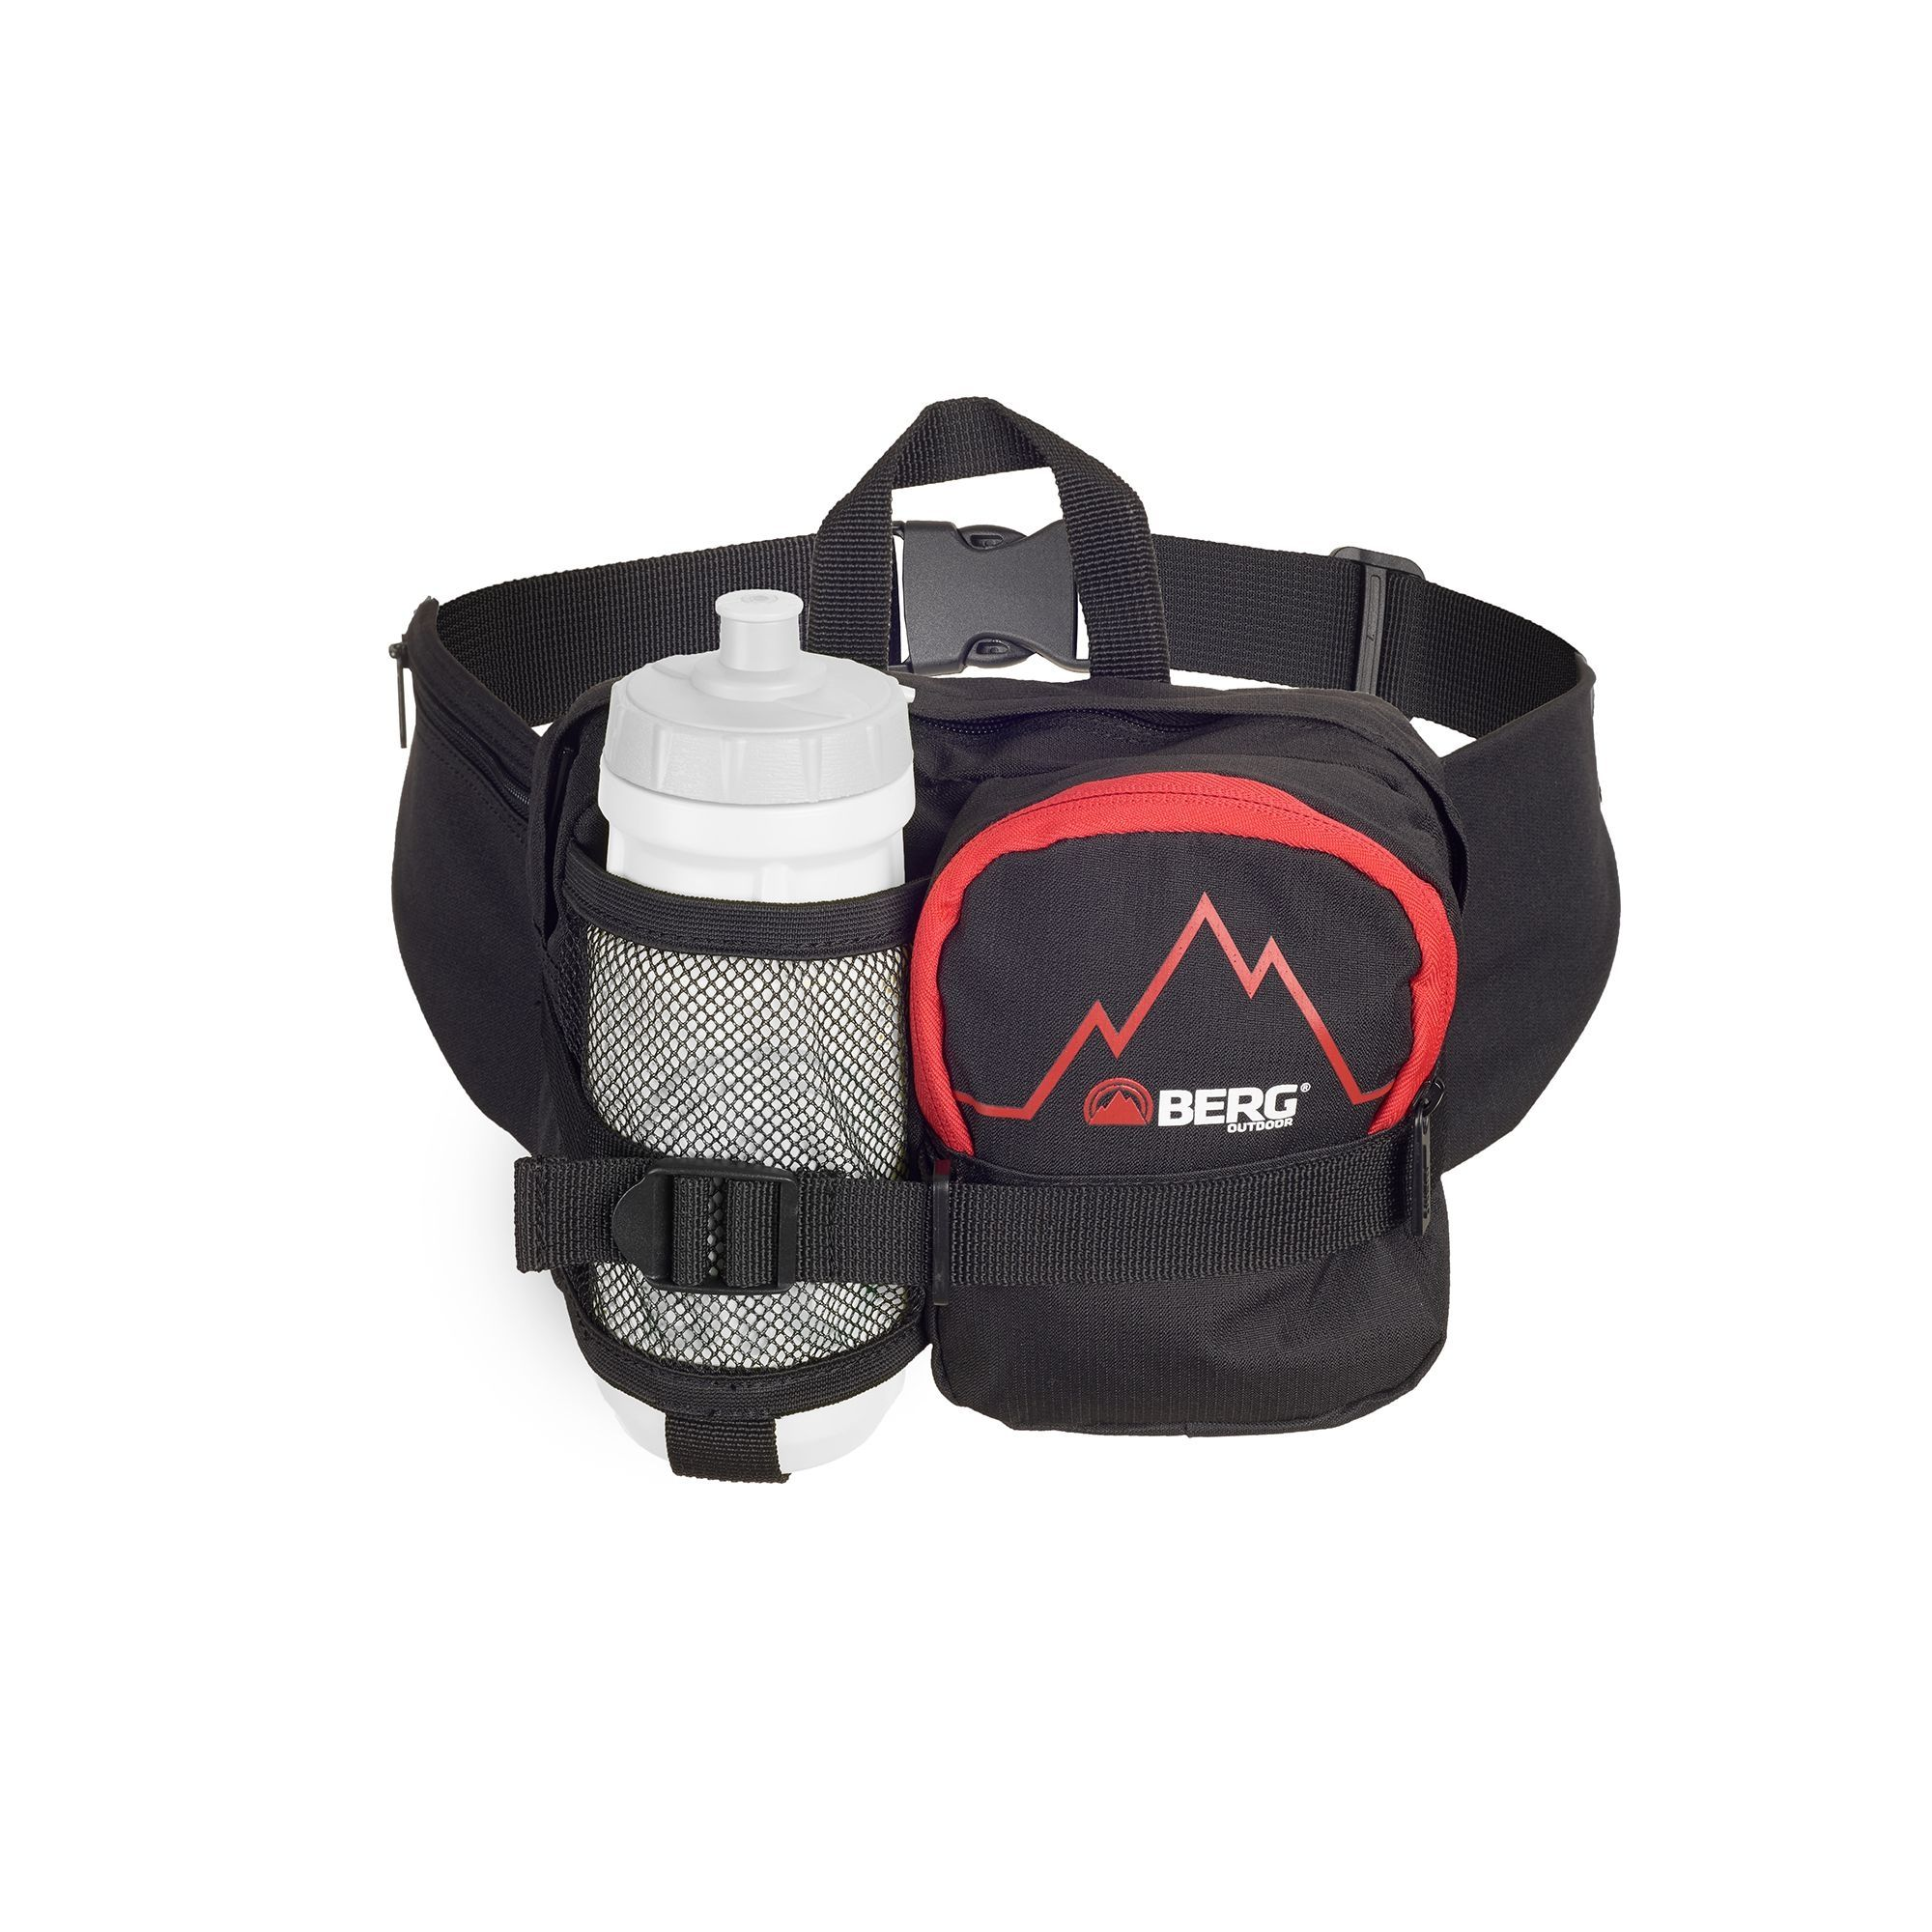 Basic waist bag with a bottle holder compartment, perfect for travelling or strolling around town.